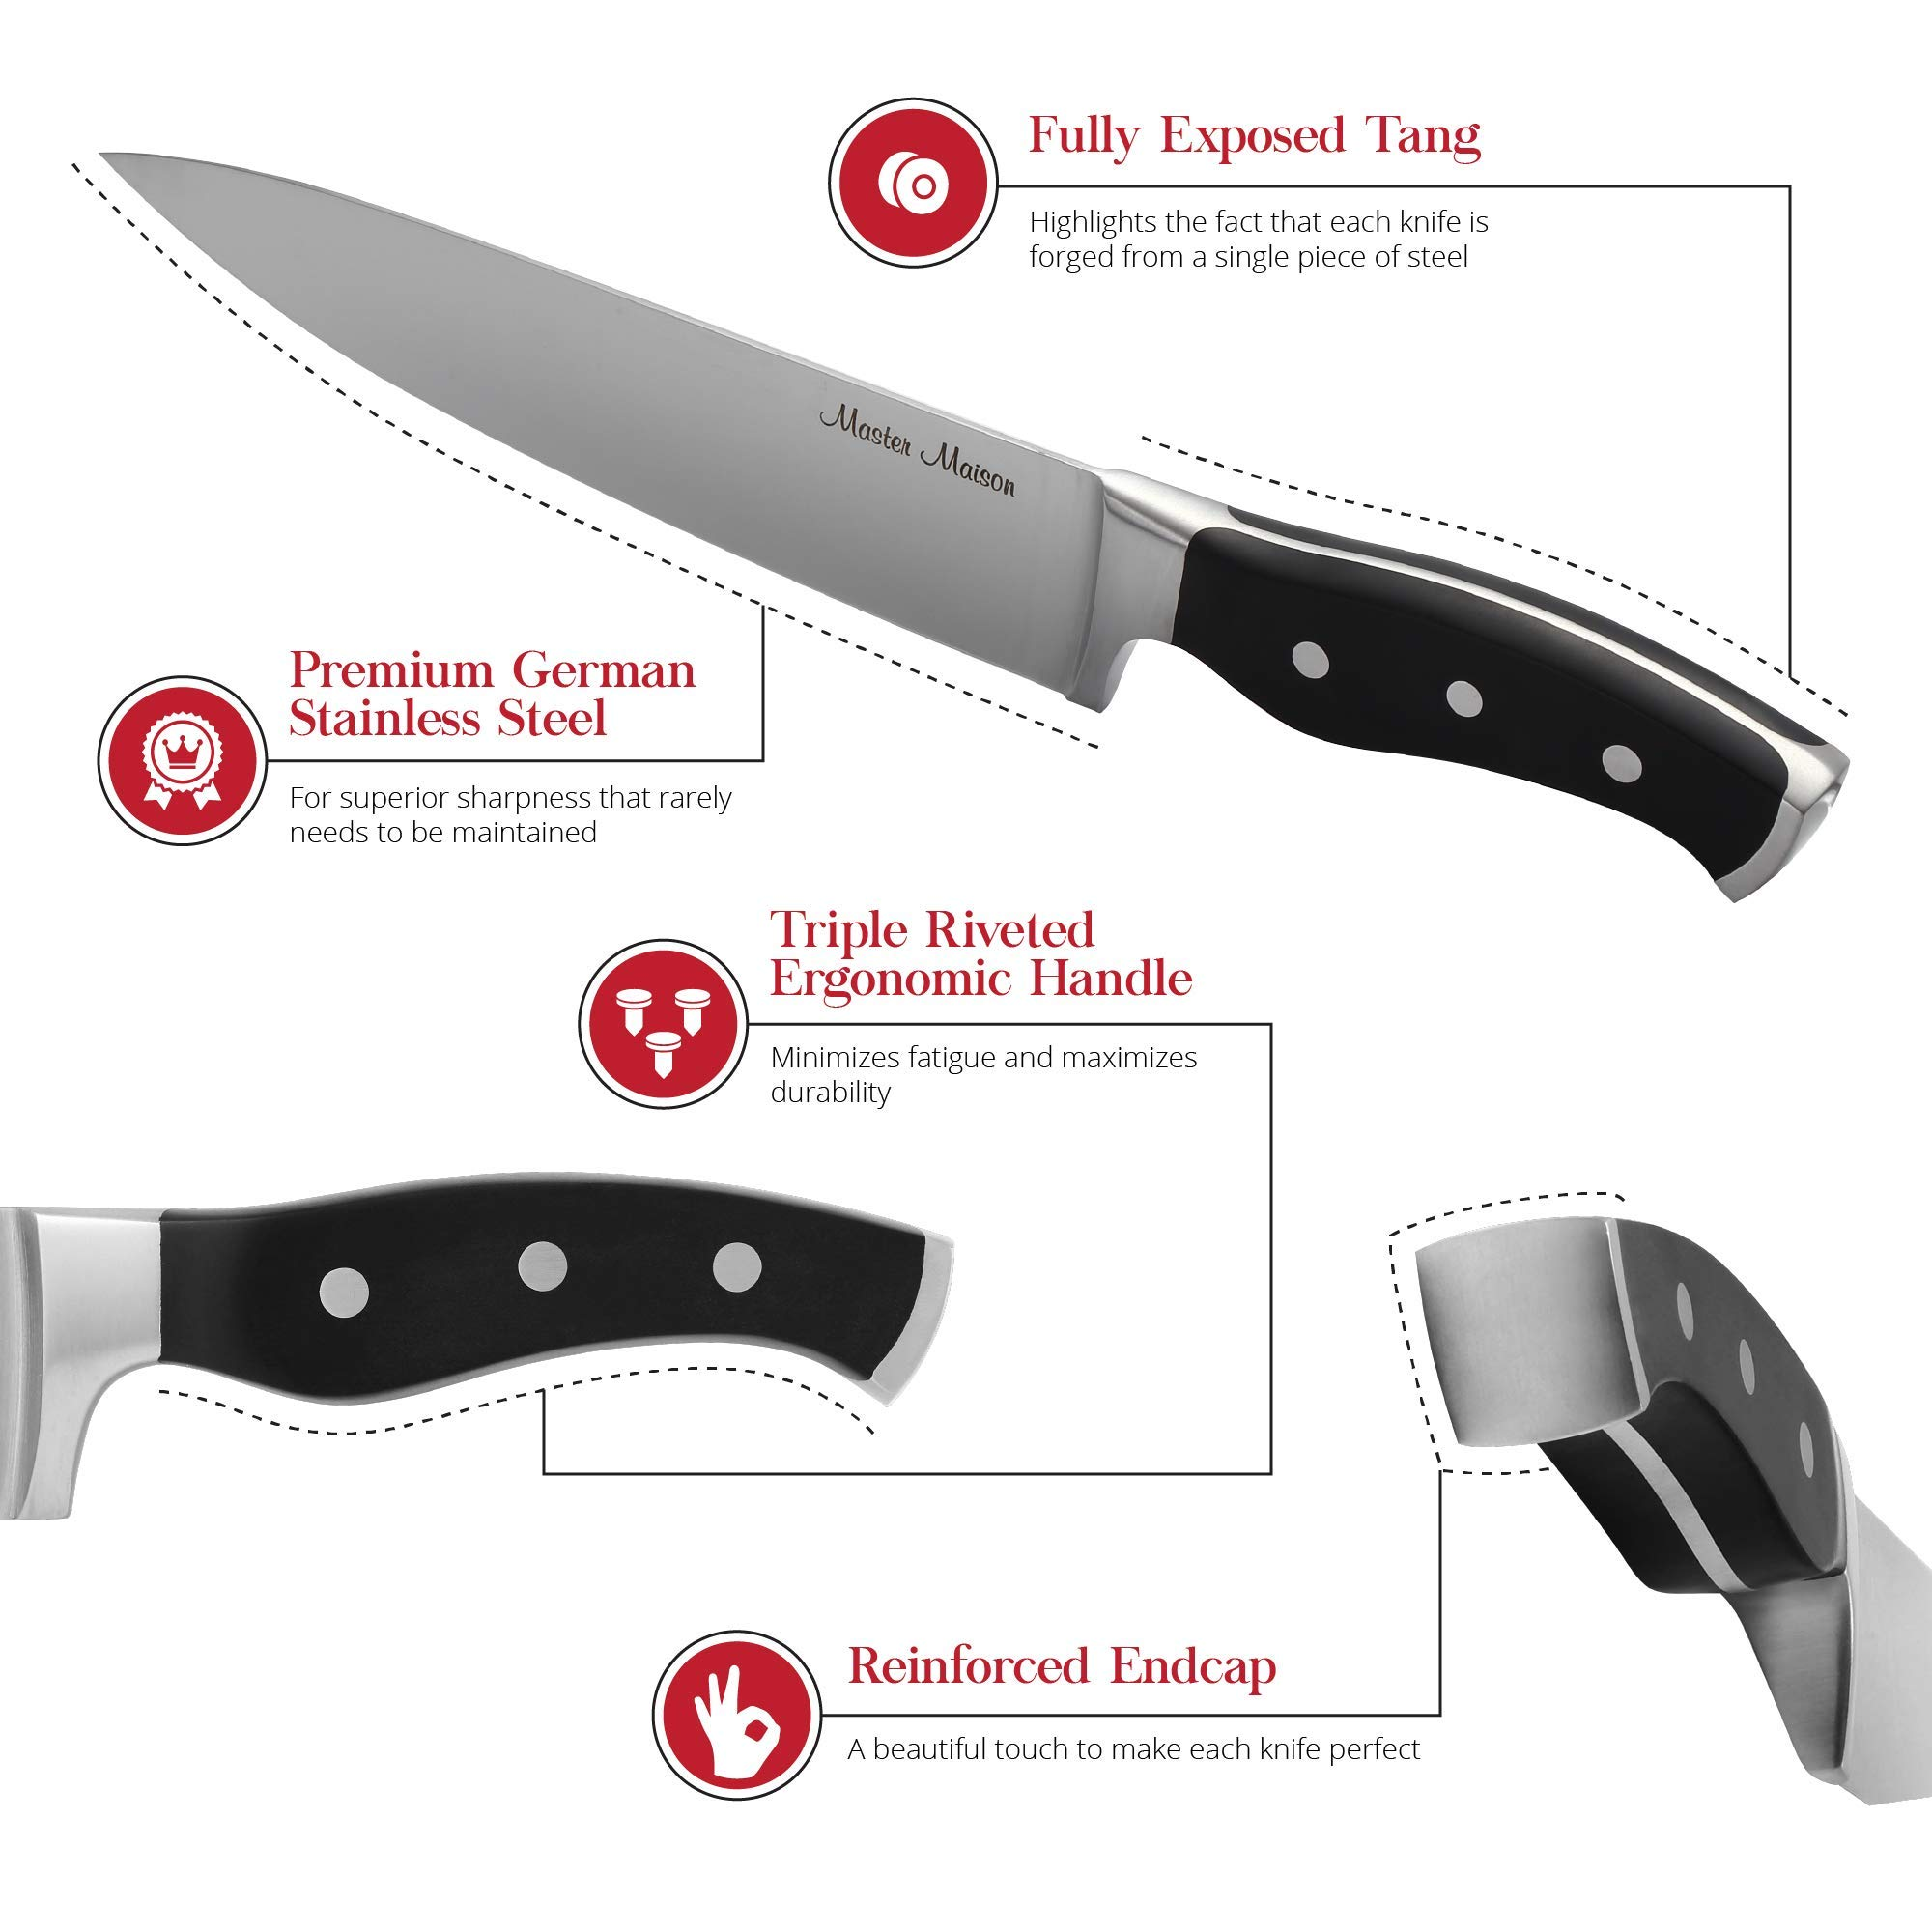 19-Piece Premium Kitchen Knife Set With Wooden Block | Master Maison German Stainless Steel Cutlery With Knife Sharpener & 8 Steak Knives by Master Maison (Image #8)